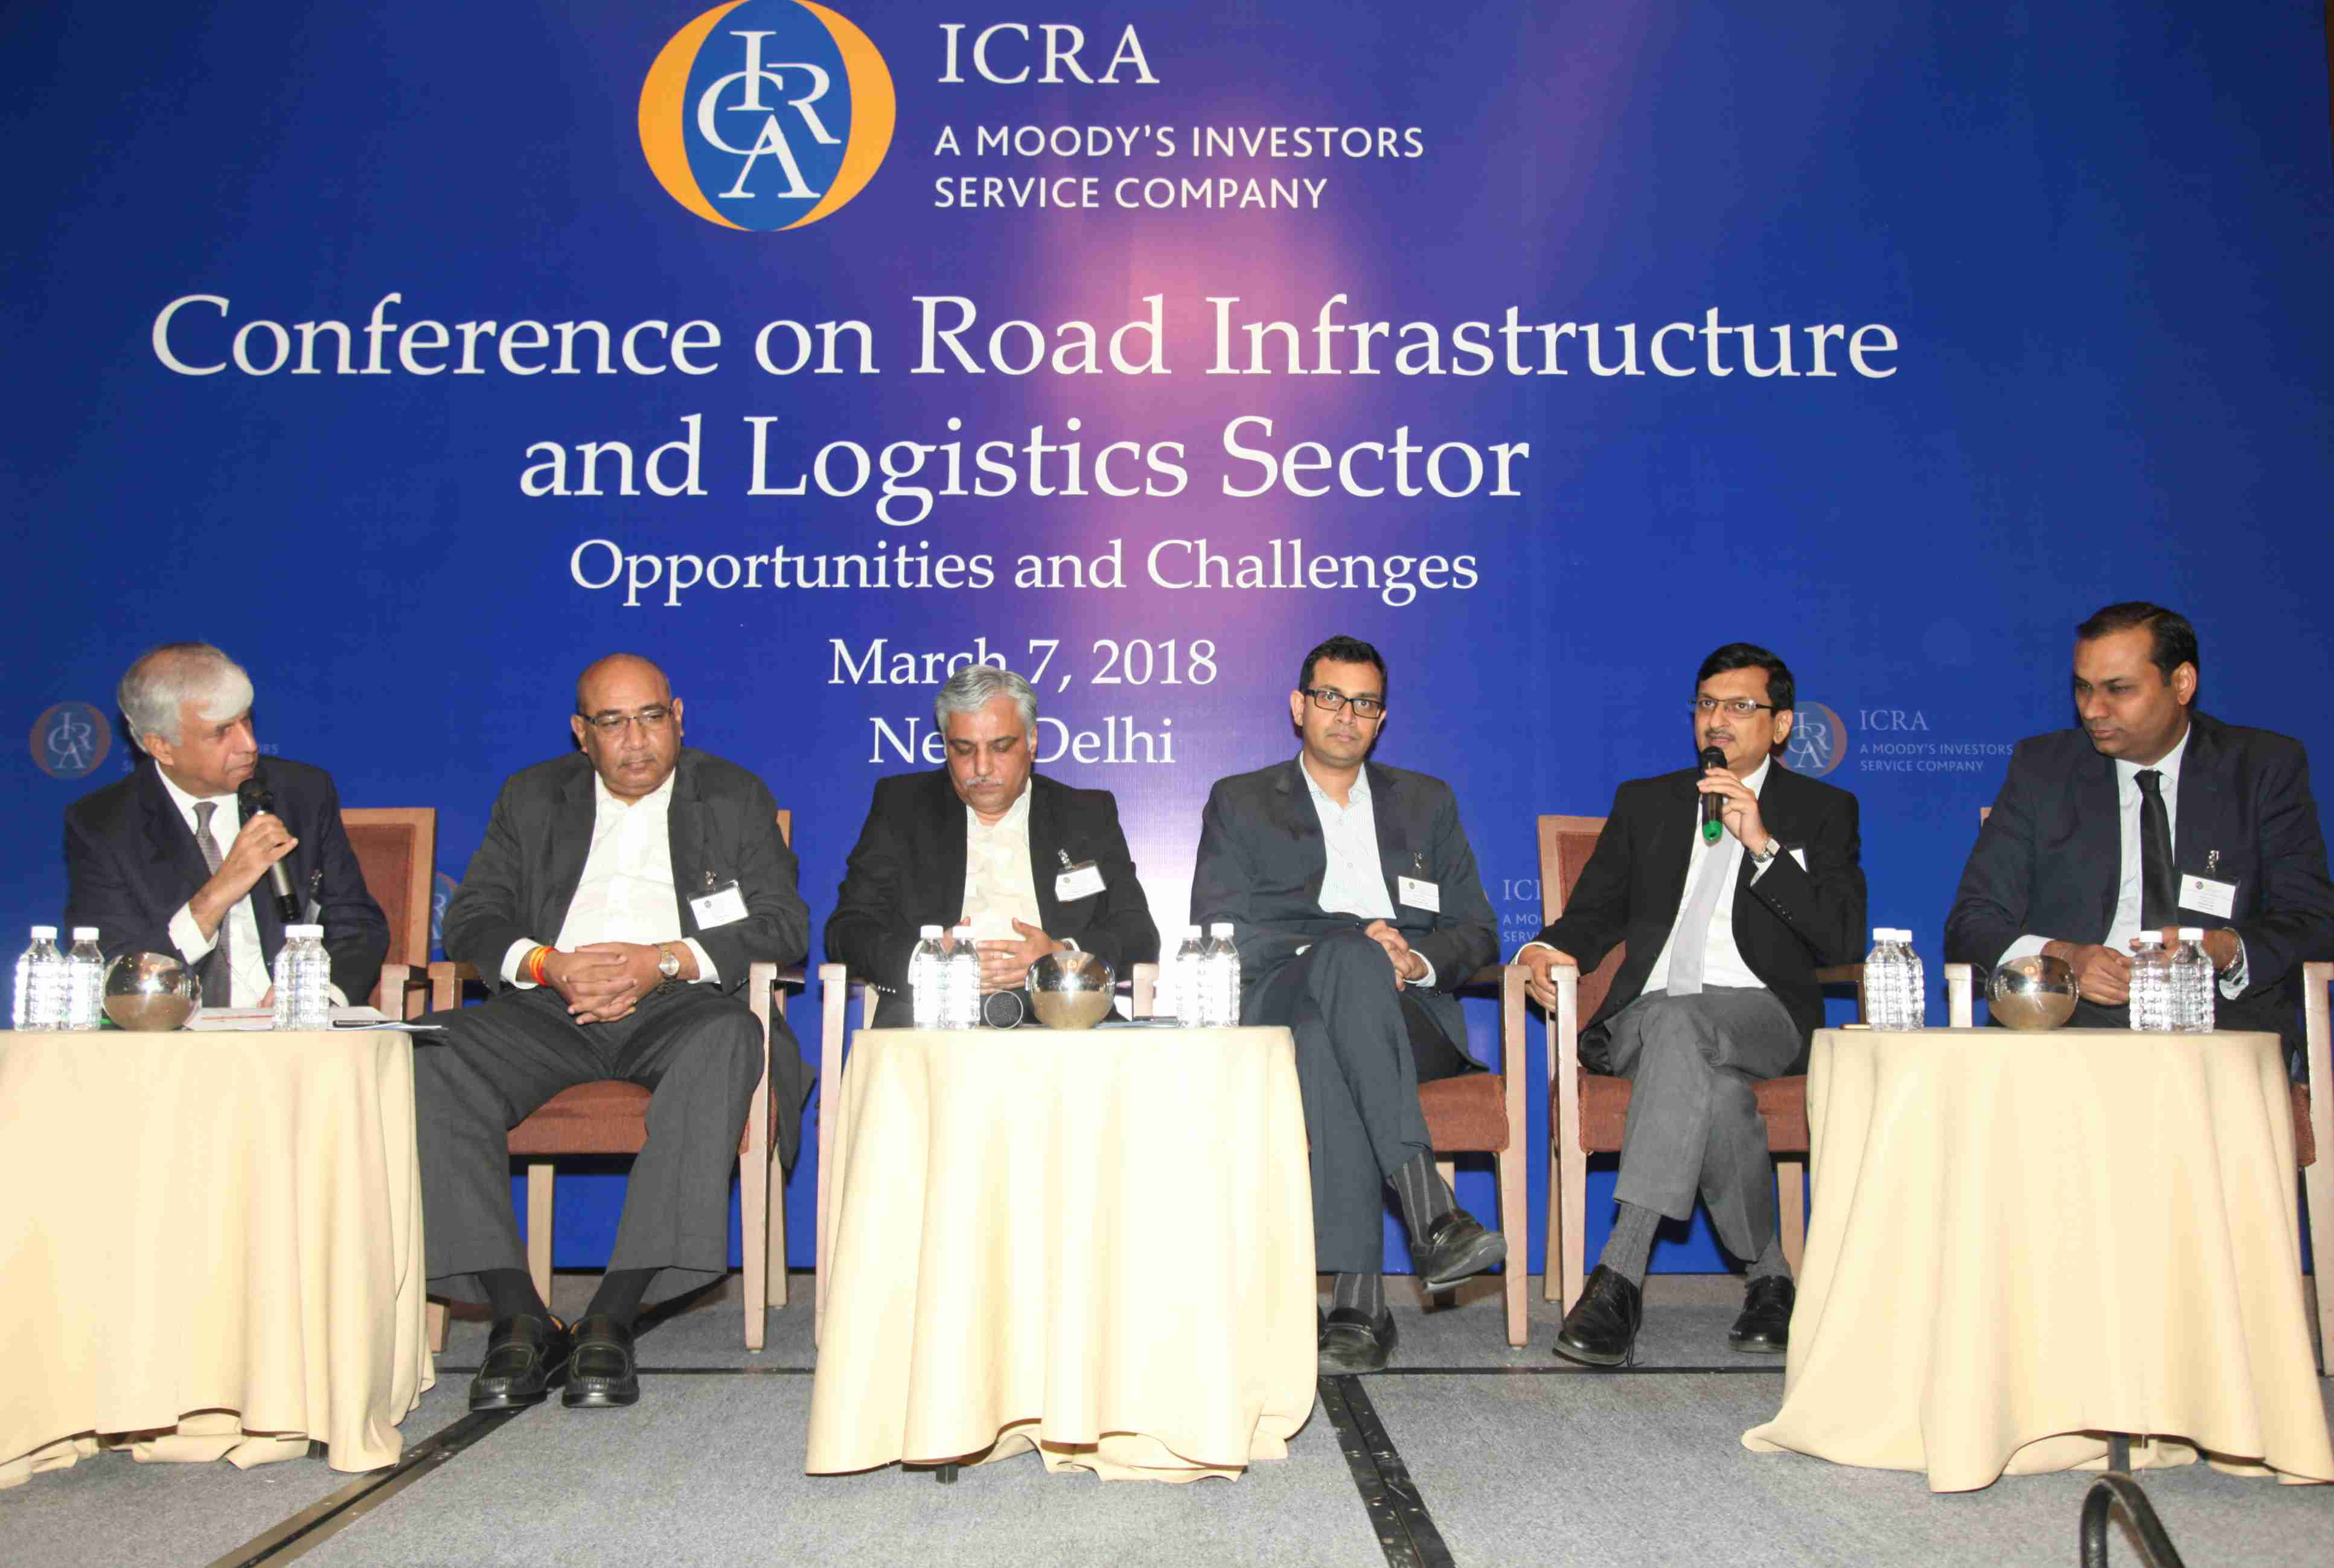 (L- R) Alok Brara, CEO and Publisher, India Infrastructure Publishing; P.R. Jaishankar, CGM, IIFCL; Rajeev Bhatnagar, MD - Feedback Highways IndVe, Feedback Infra Pvt Ltd; Sandeep Lakhanpal, Head- M&A and Business Development, Cube Highways & Transportation Assets Advisors (P) Ltd; S.K. Agarwal, Senior VP, Project Advisory & Structured Finance, SBI Capital Markets Ltd and Shubham Jain, Sector Head and VP, ICRA having a discussion on 'From NHDP to Bharatmala Pariyojana – A shift in Paradigm'